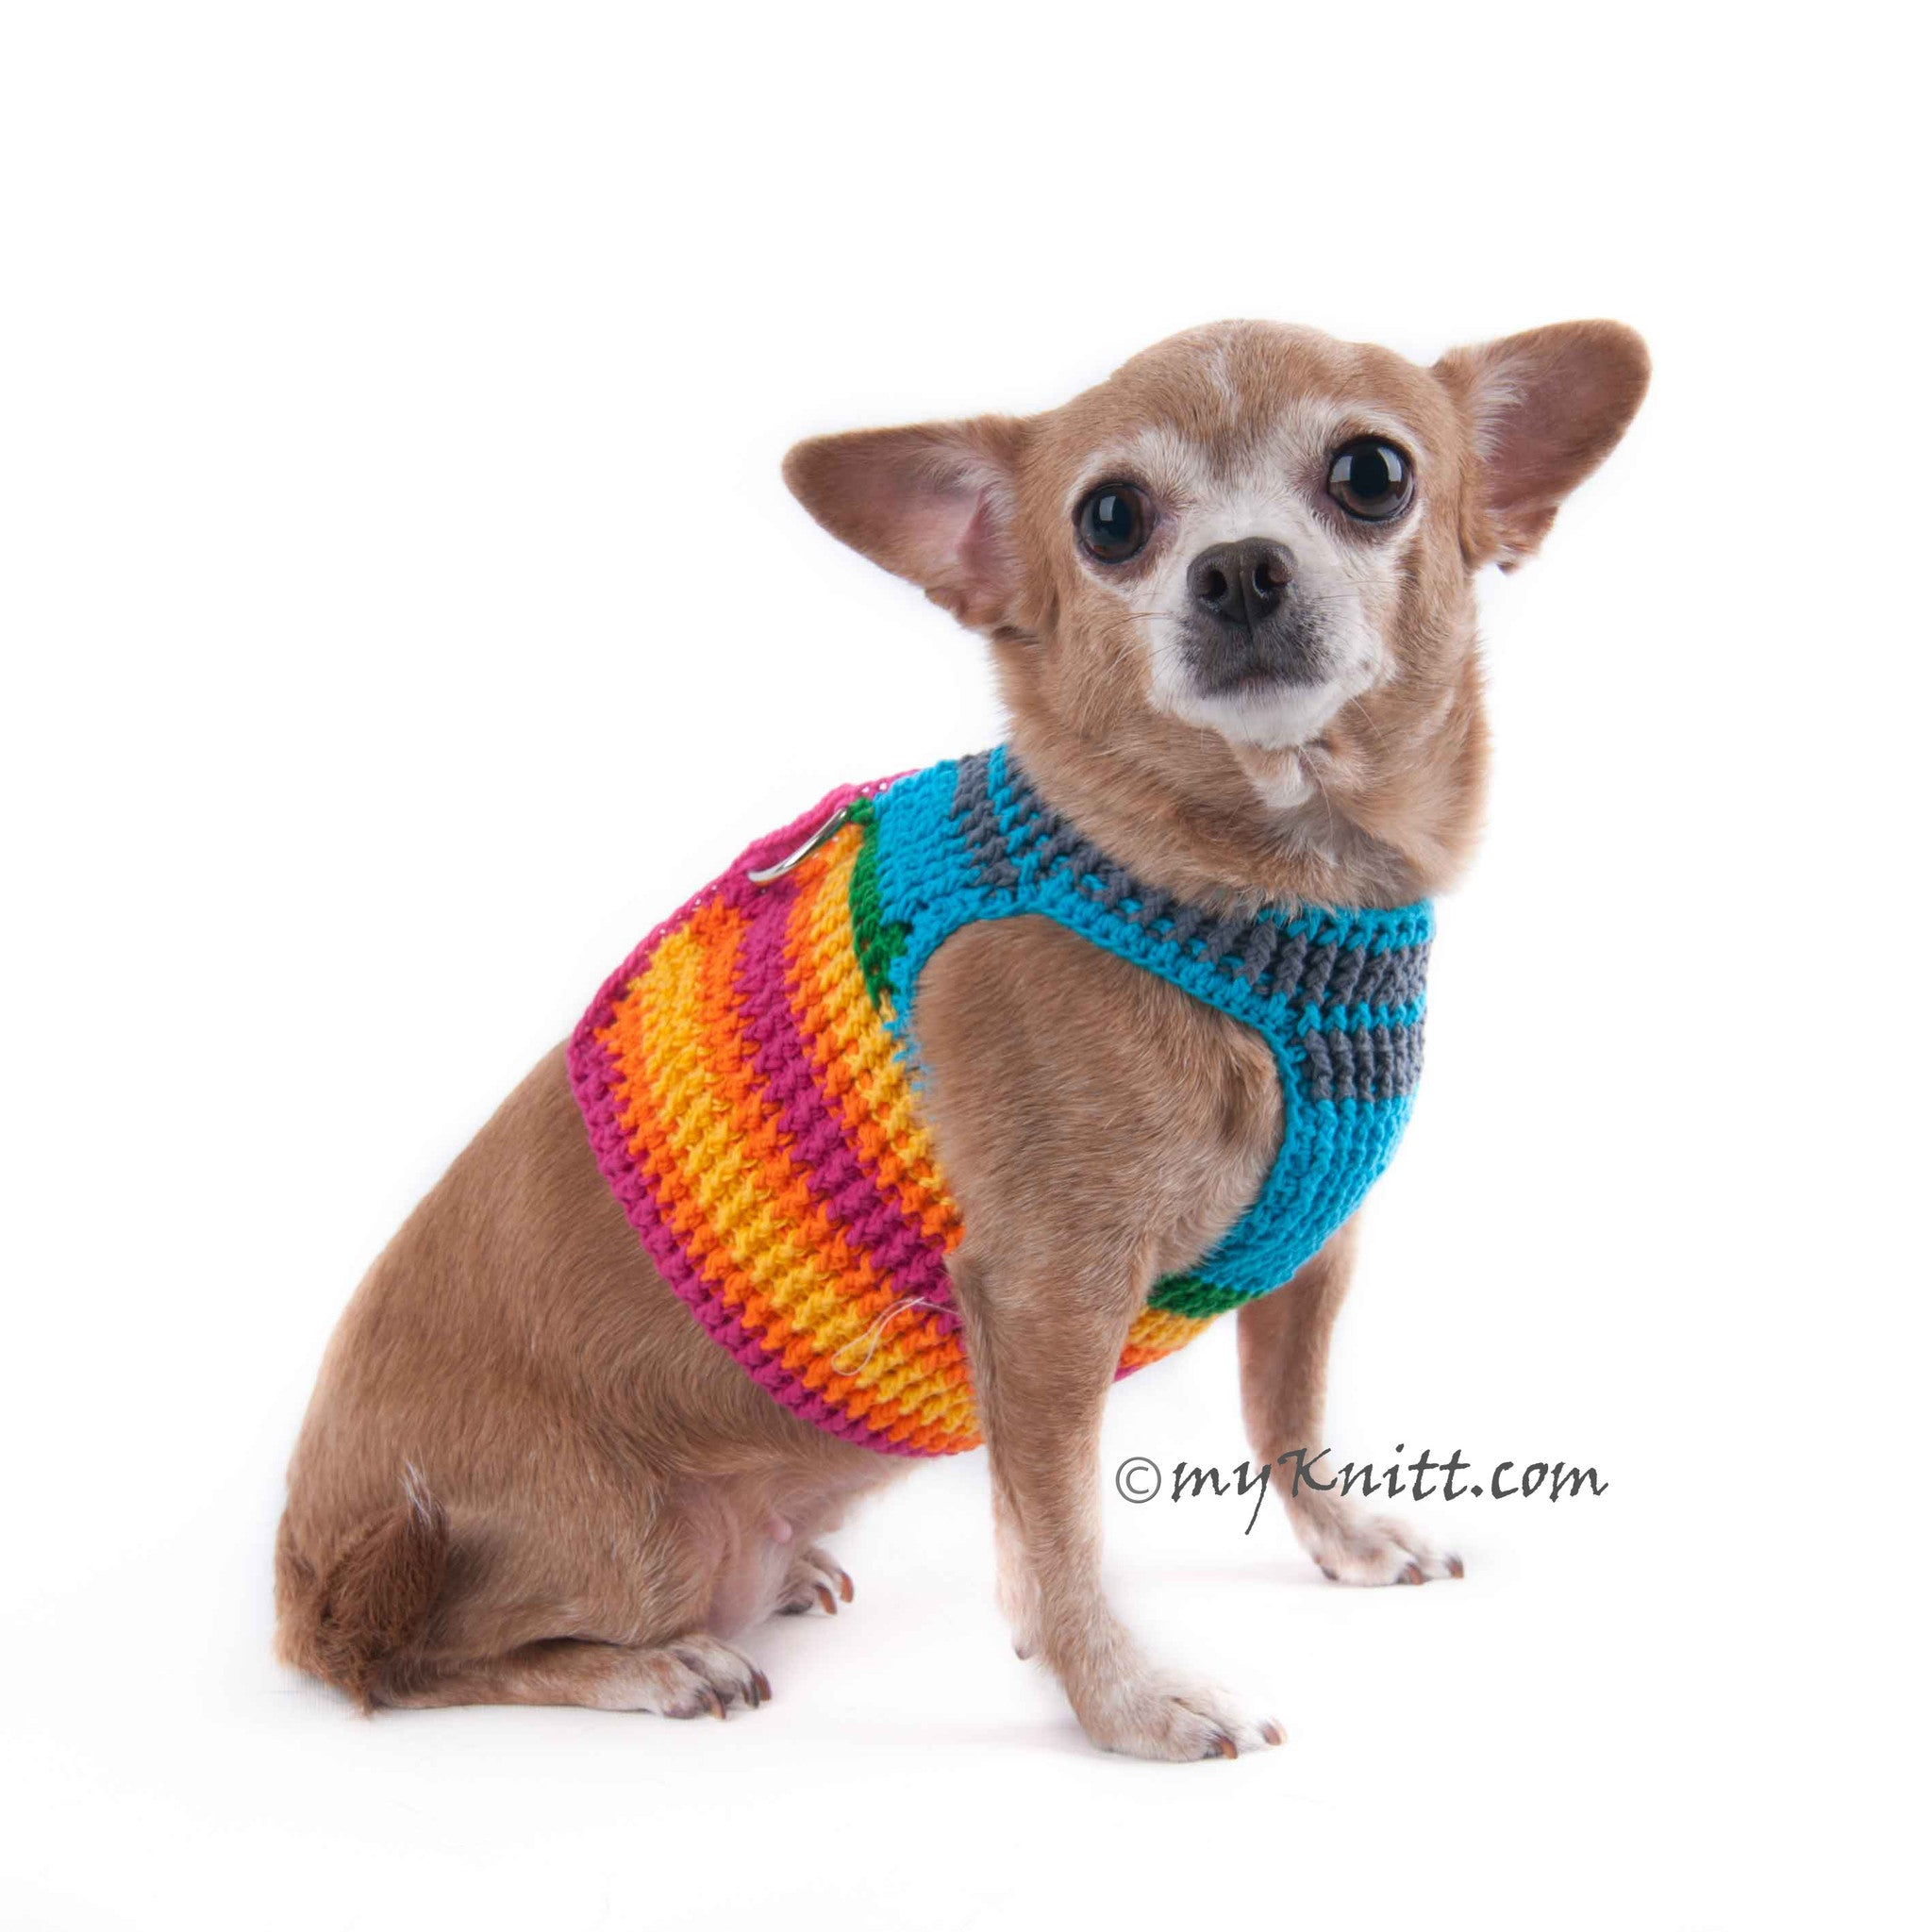 Rainbow Dog Harness Velcro Adjustable Choke Free Puppy Clothes DH45 - Myknitt